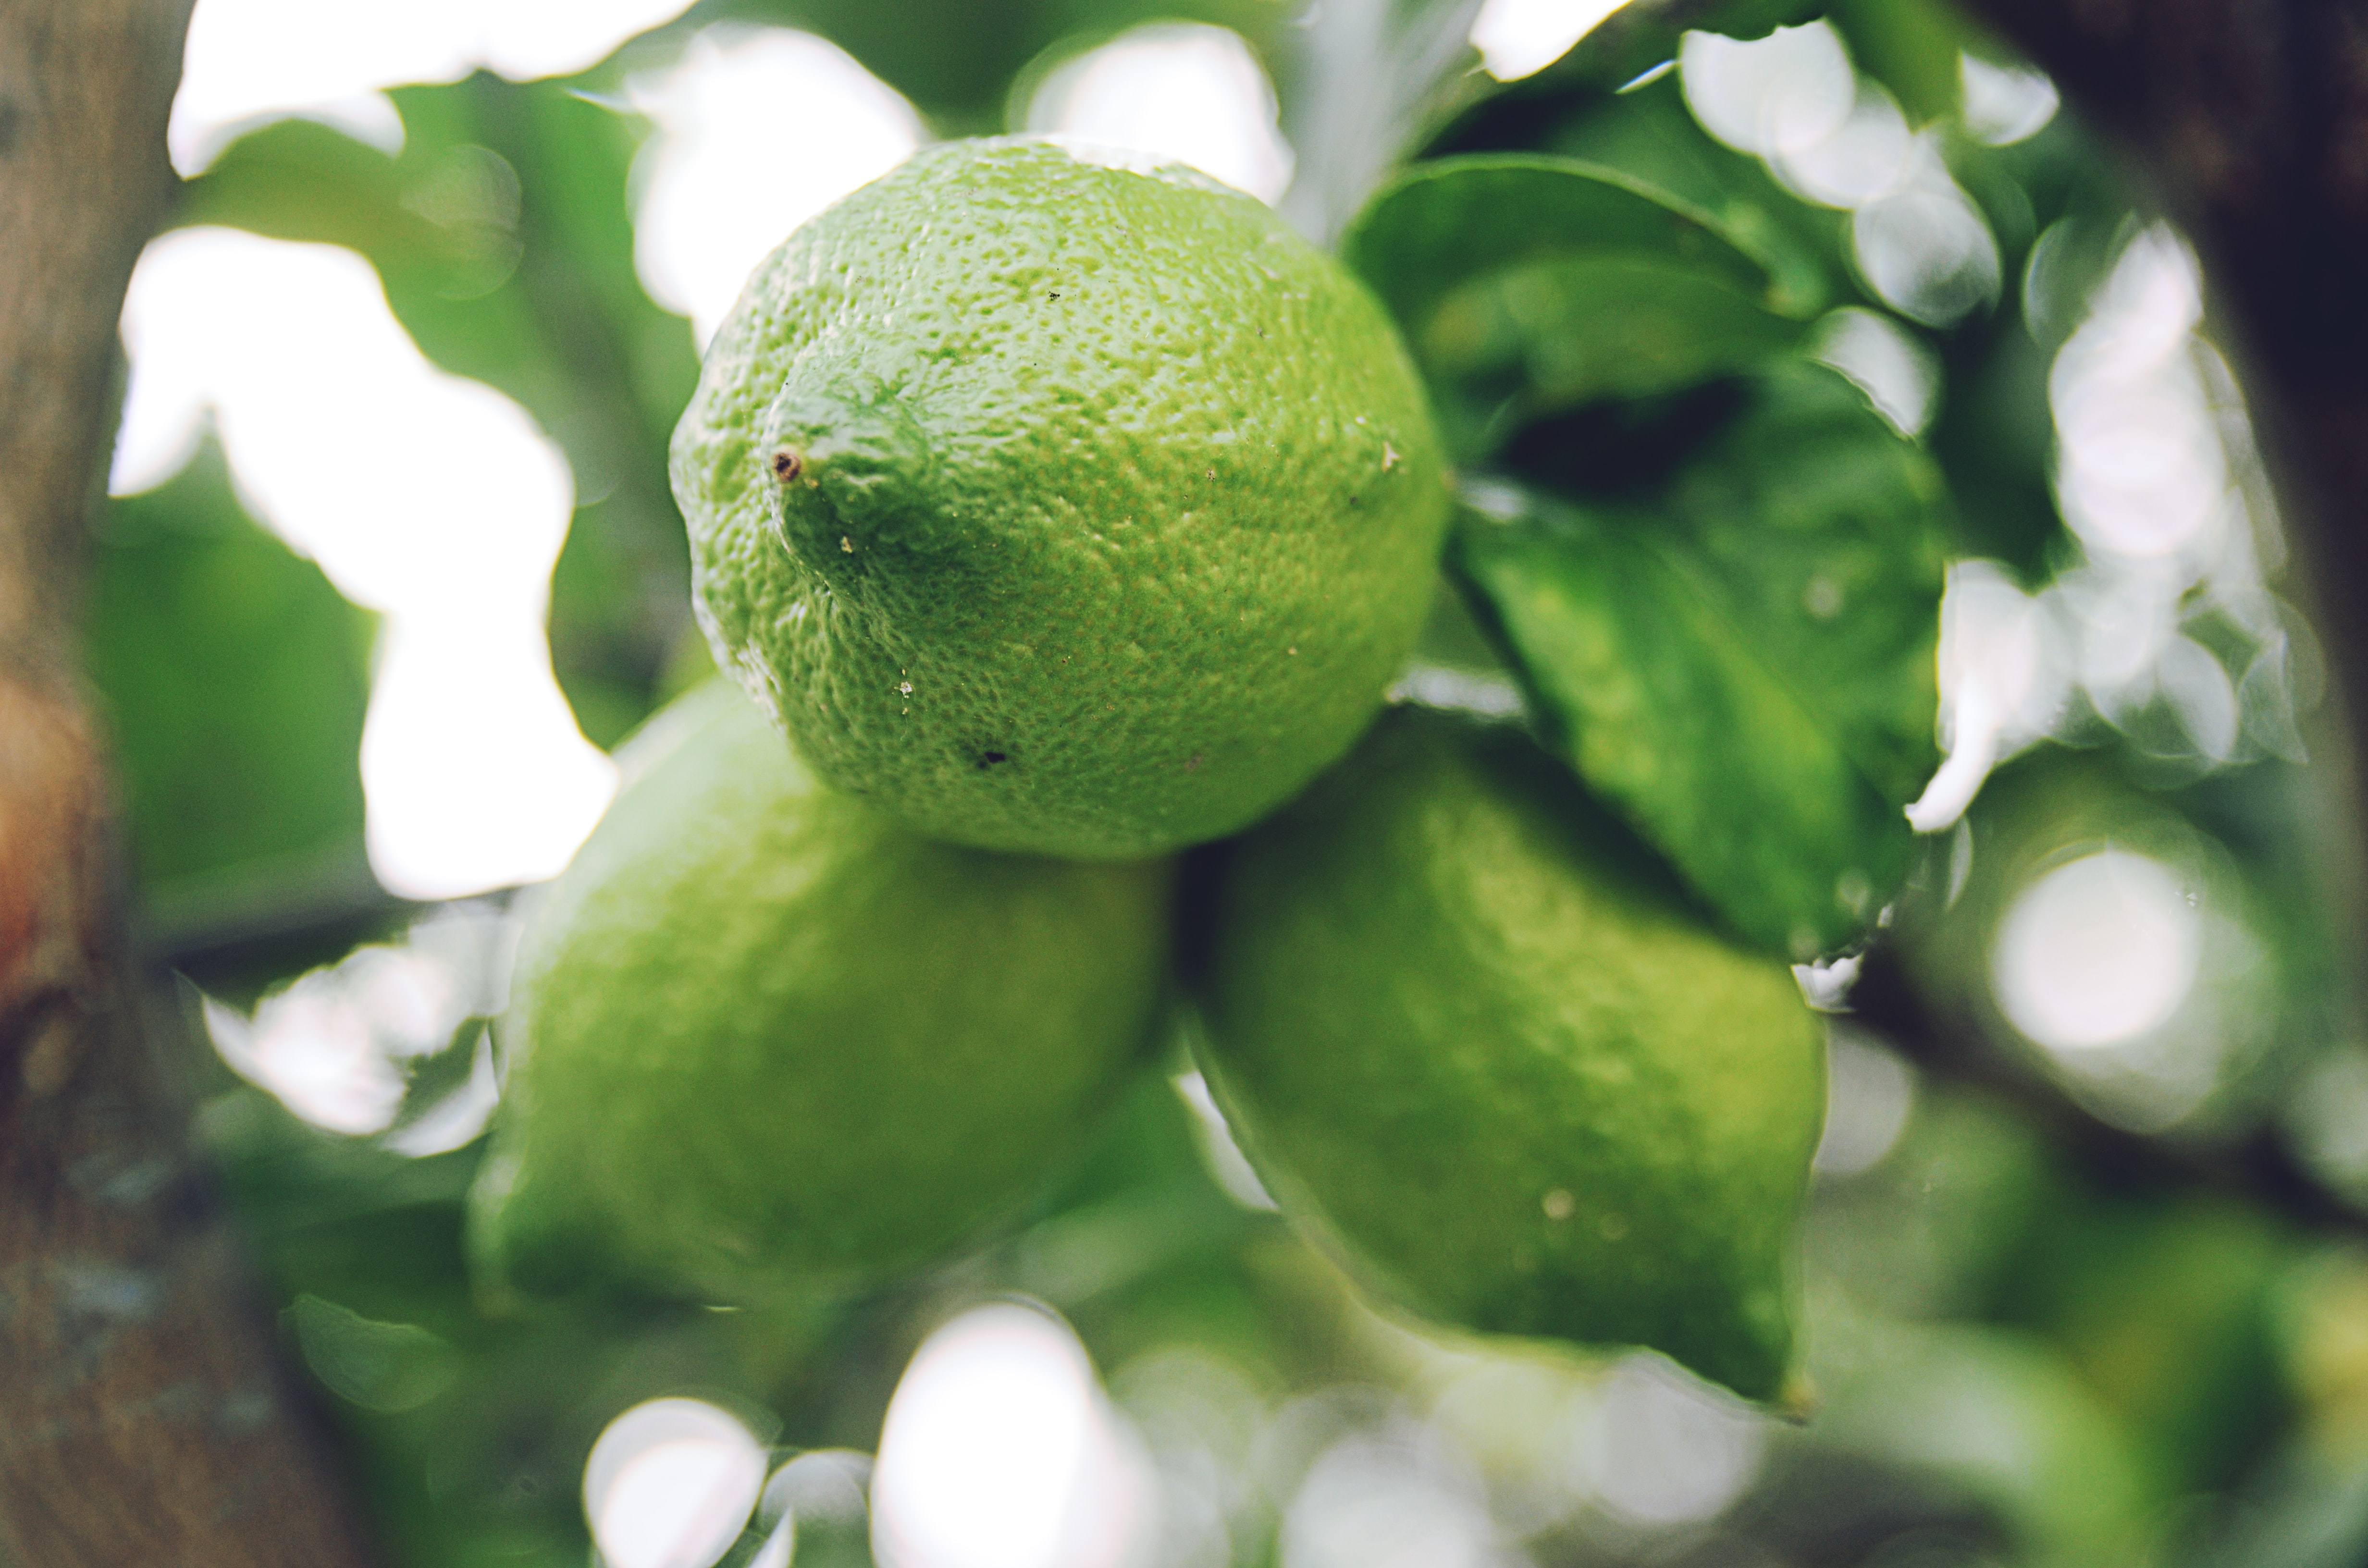 close up photo of green citrus fruit